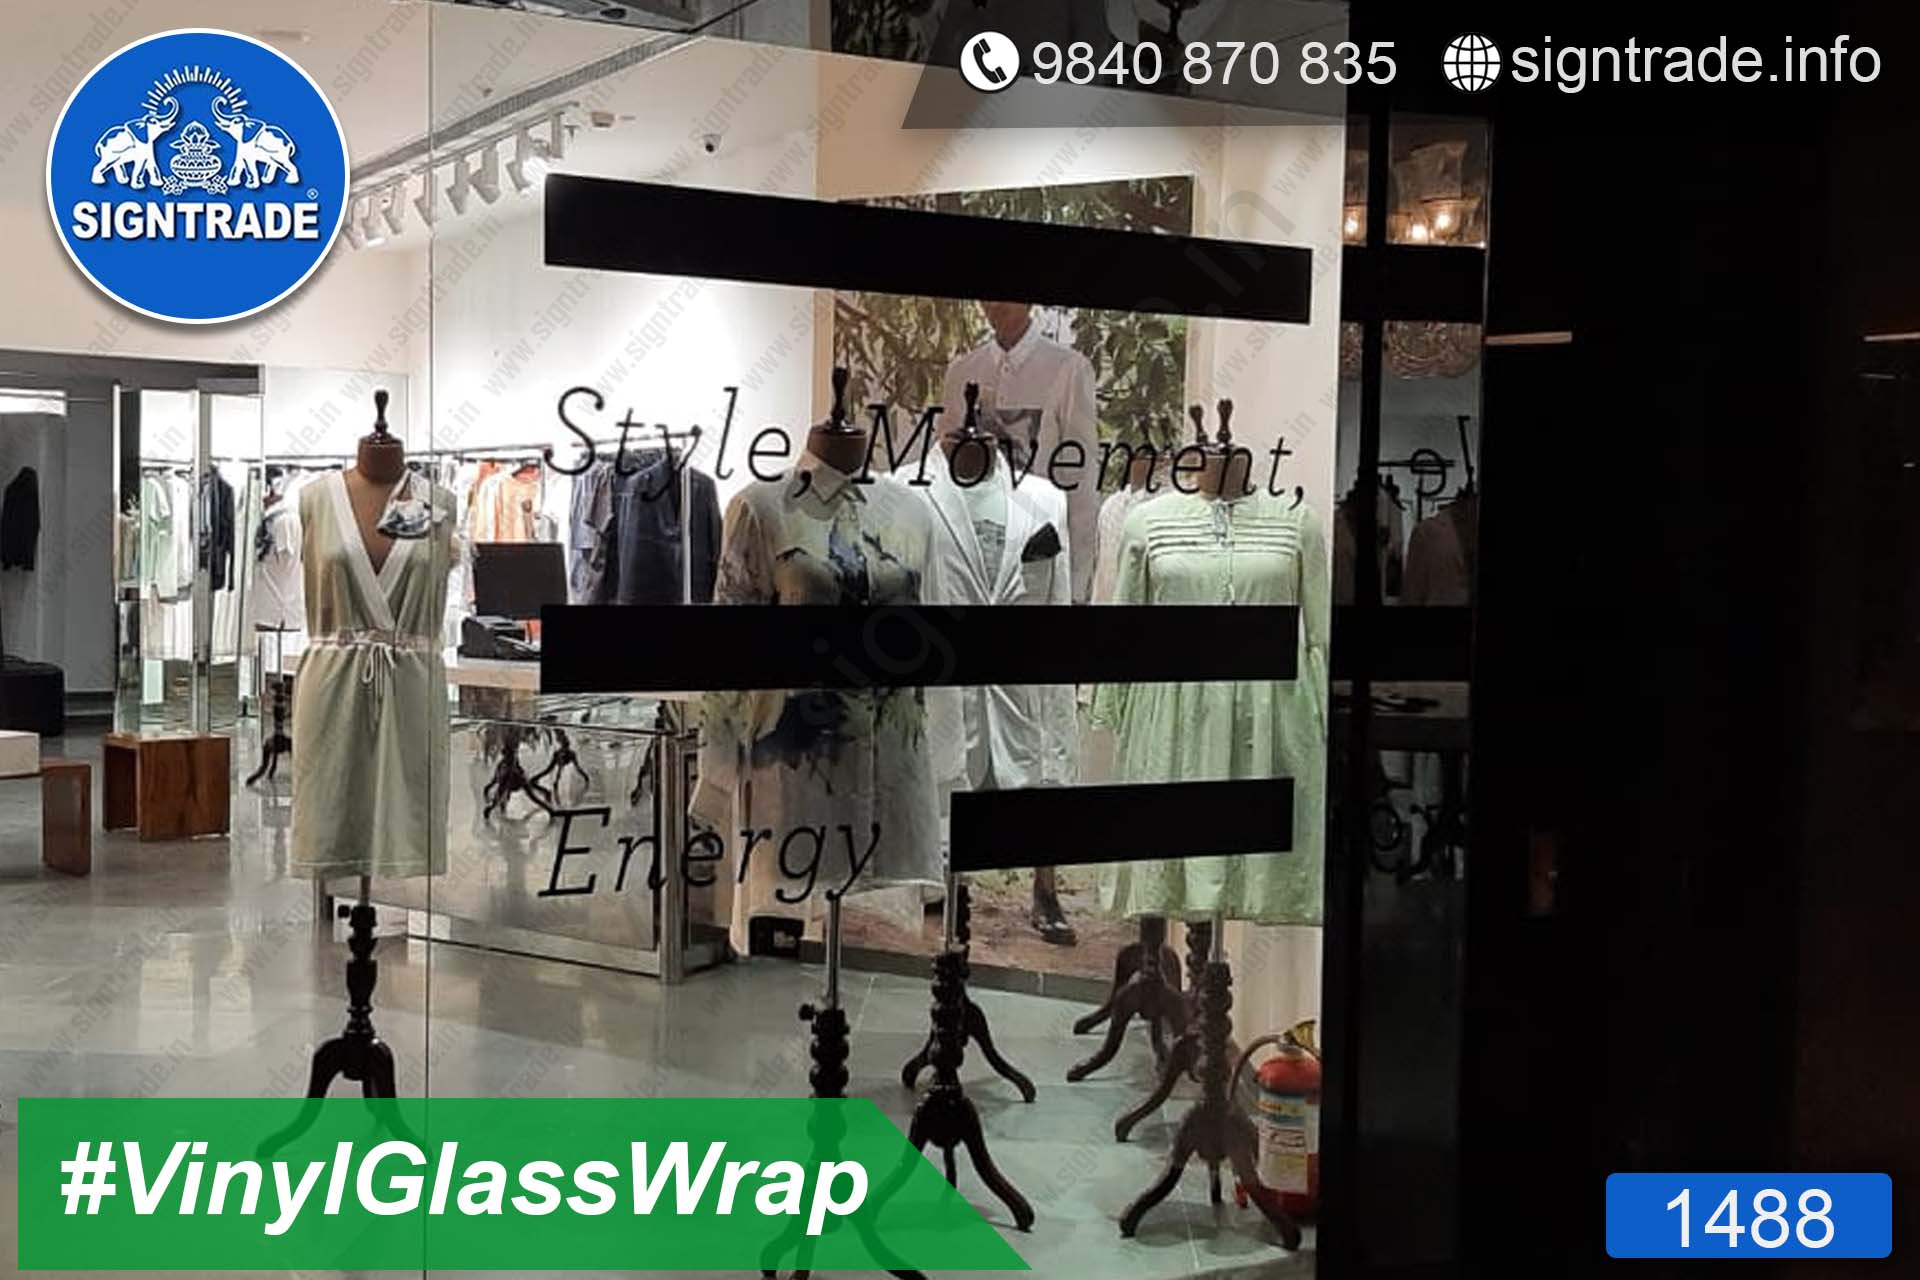 Vinyl Wrapping On Glass Doors - SIGNTRADE - Vinyl Printing Service in Chennai